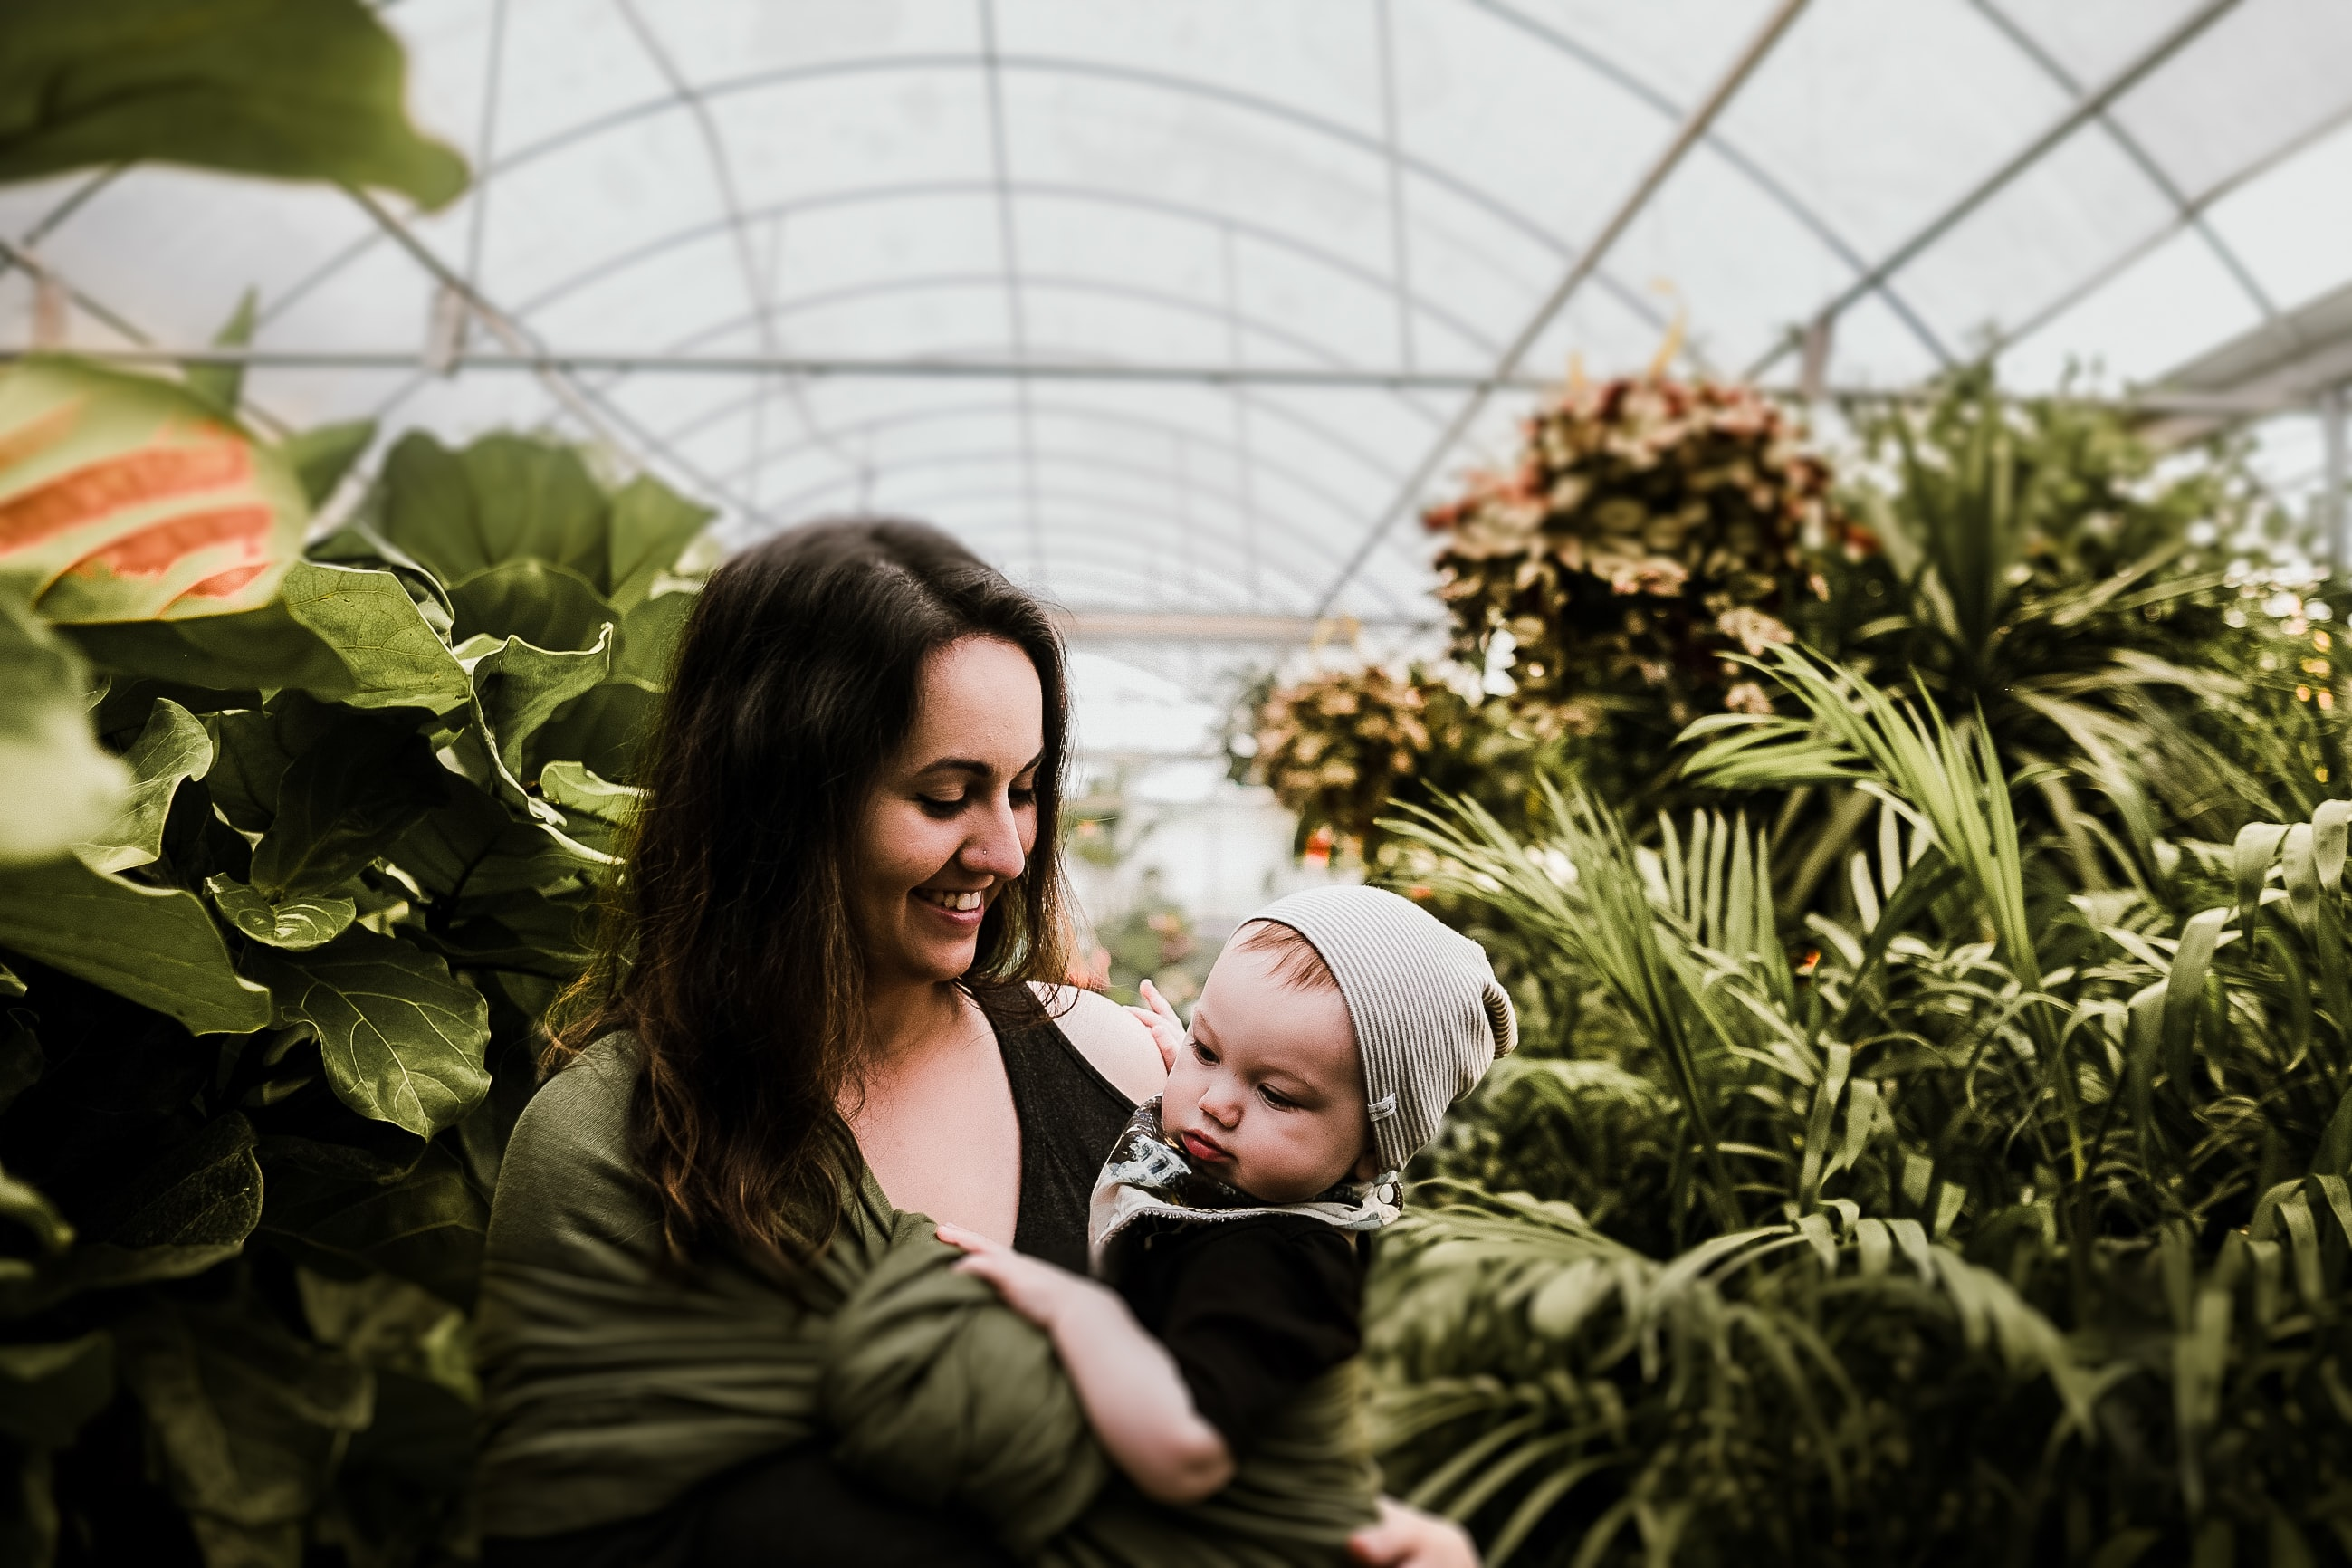 woman carrying baby inside greenhouse